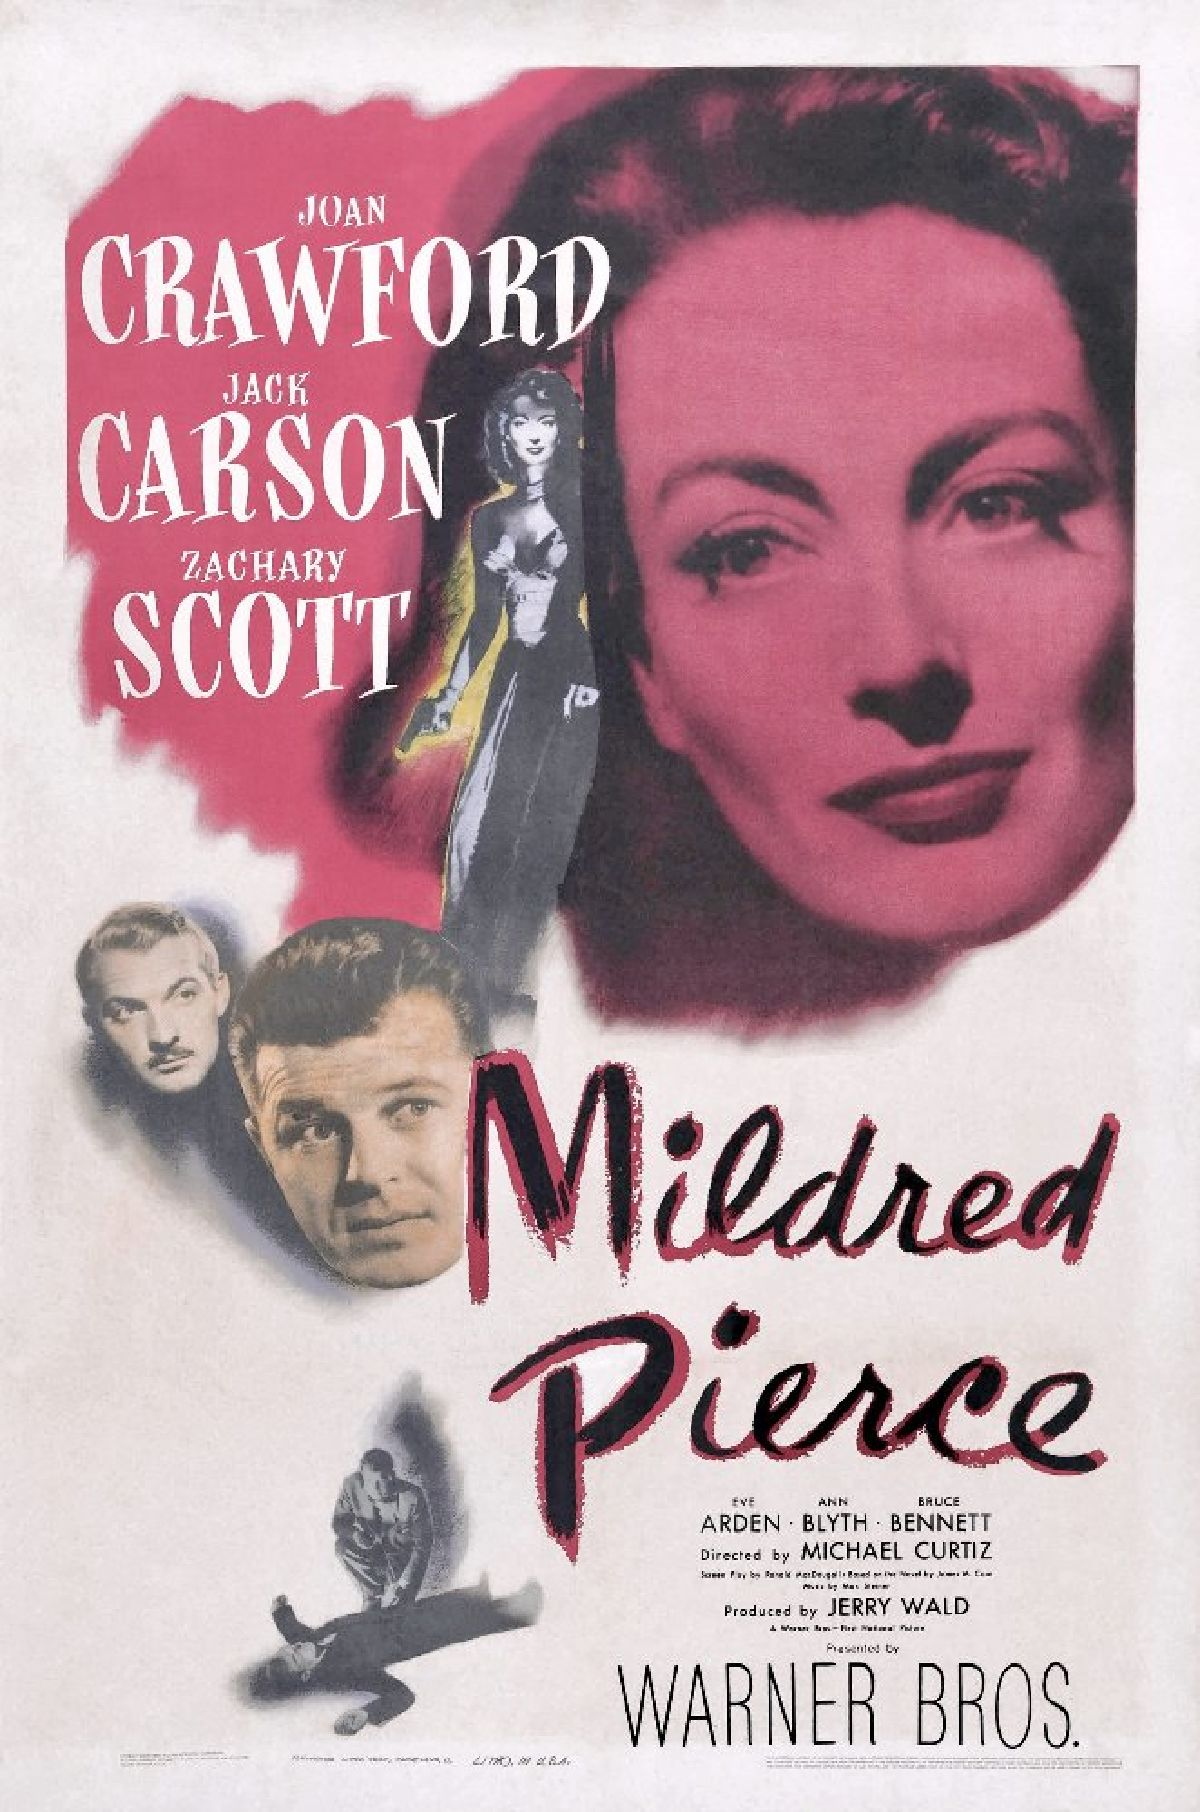 'Mildred Pierce' movie poster